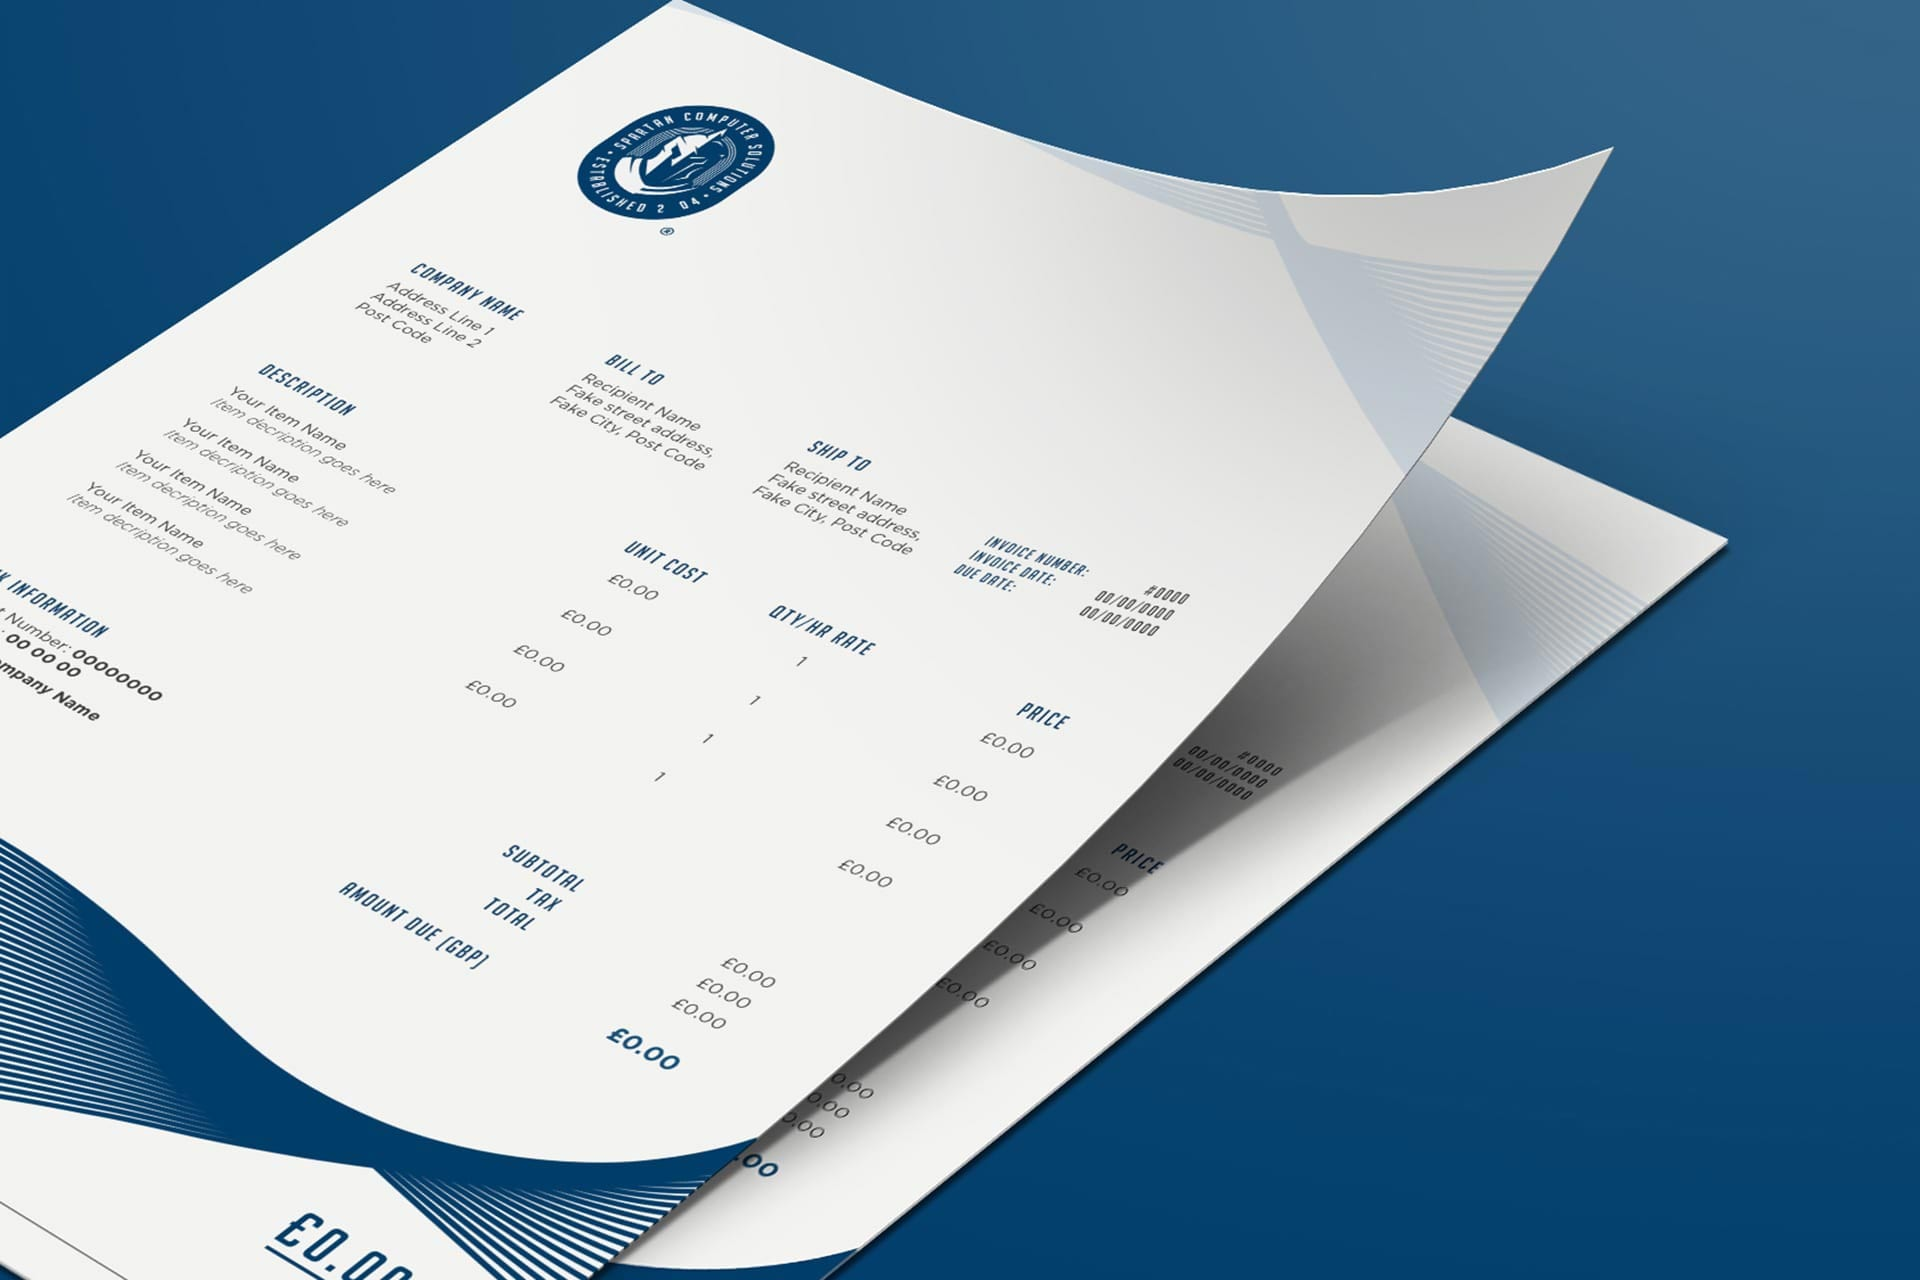 Spartan Computer Solutions Stationery design mockup - invoice designs